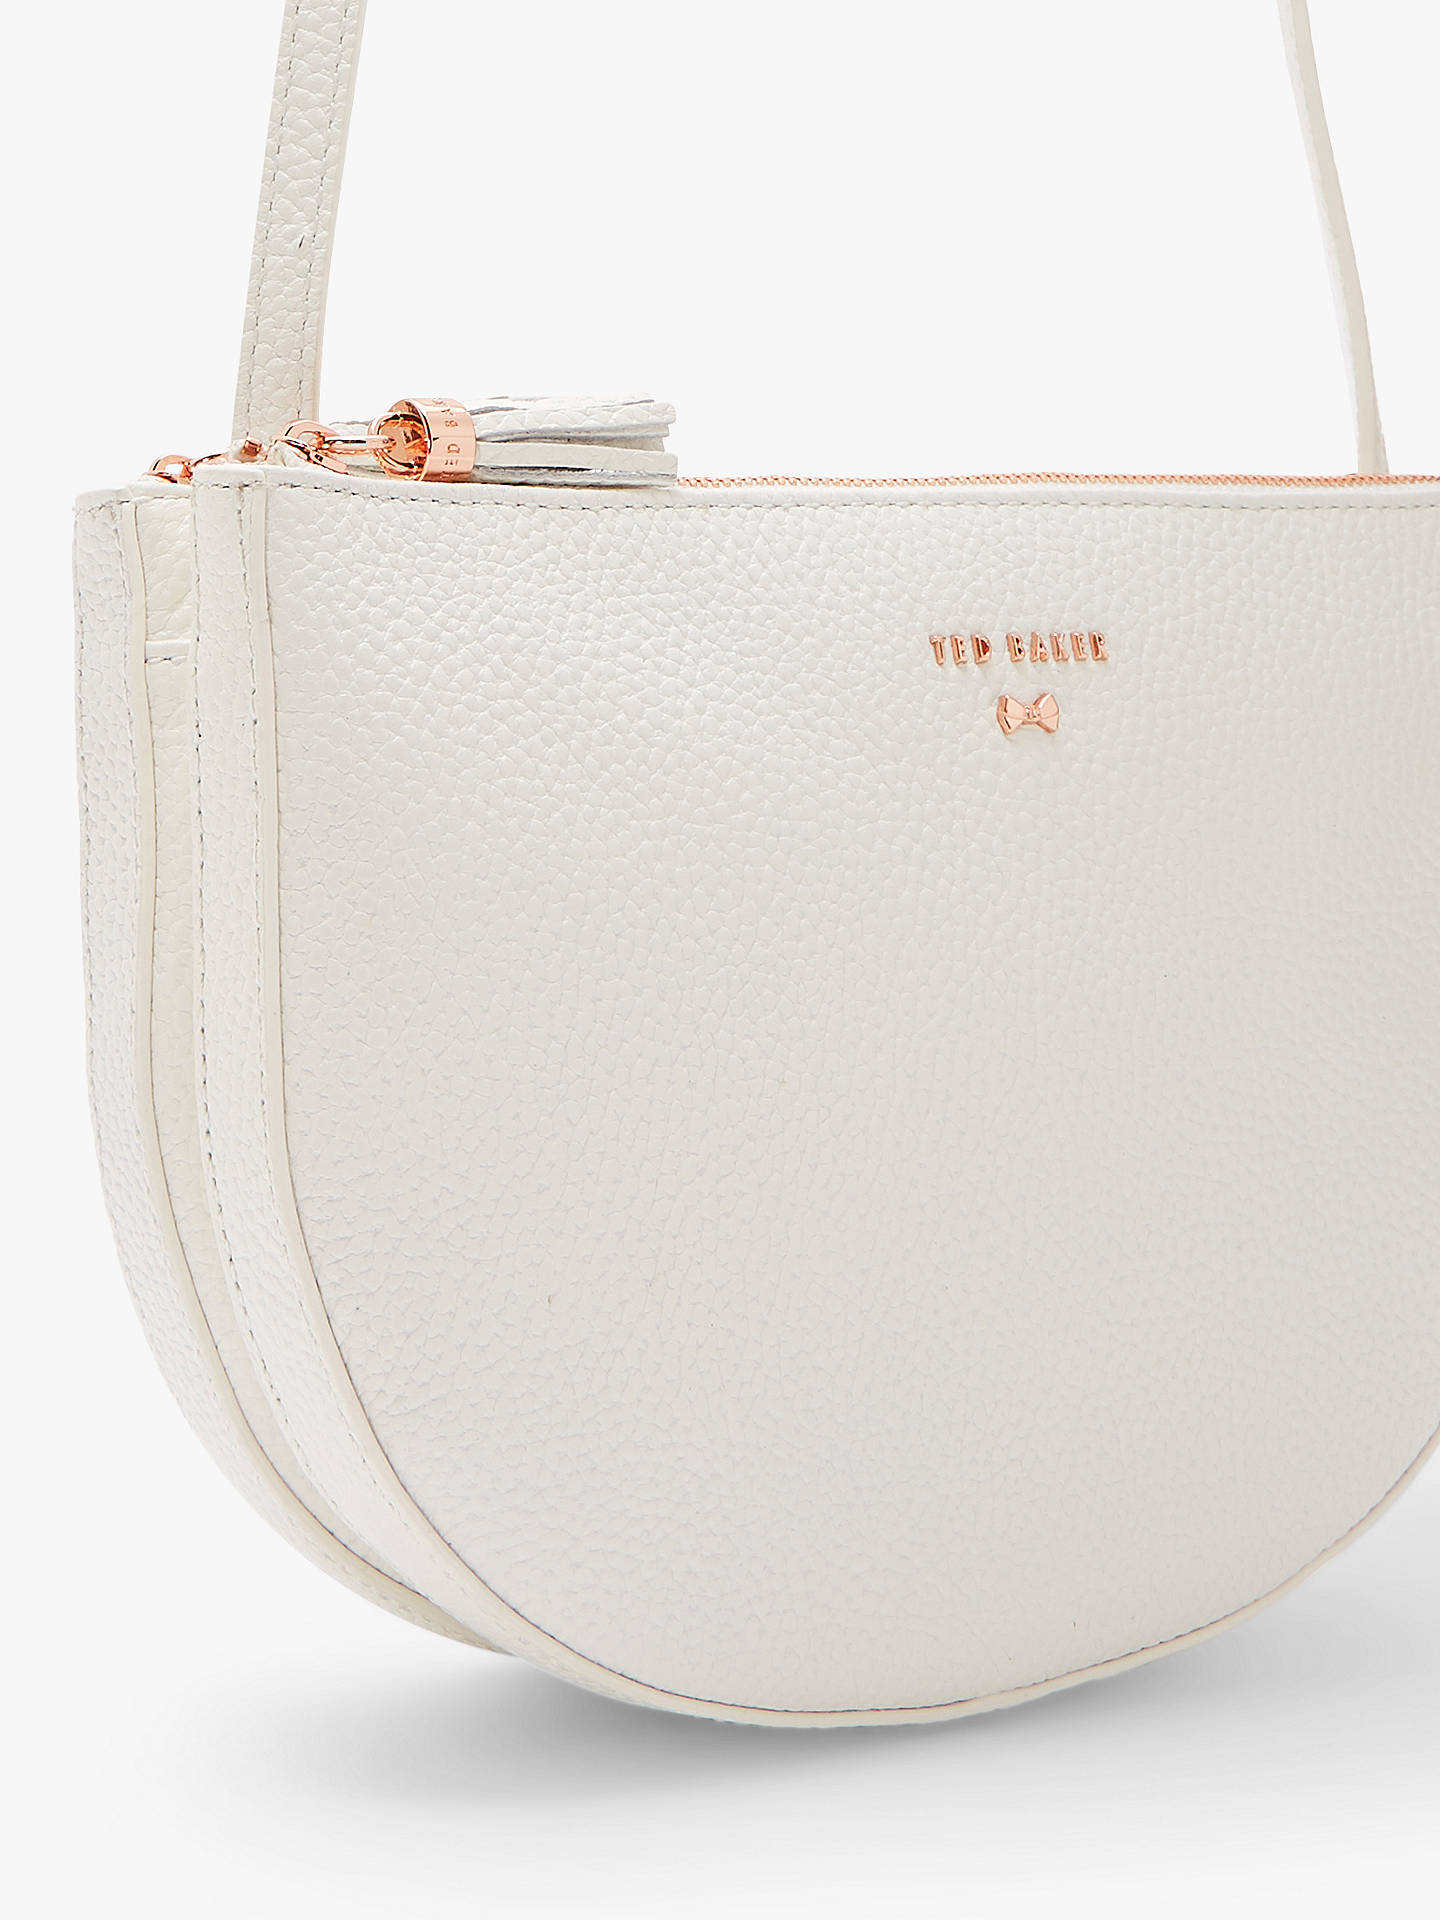 56fa07659 Buy Ted Baker Suzzane Leather Double Zip Cross Body Bag, White Online at  johnlewis.